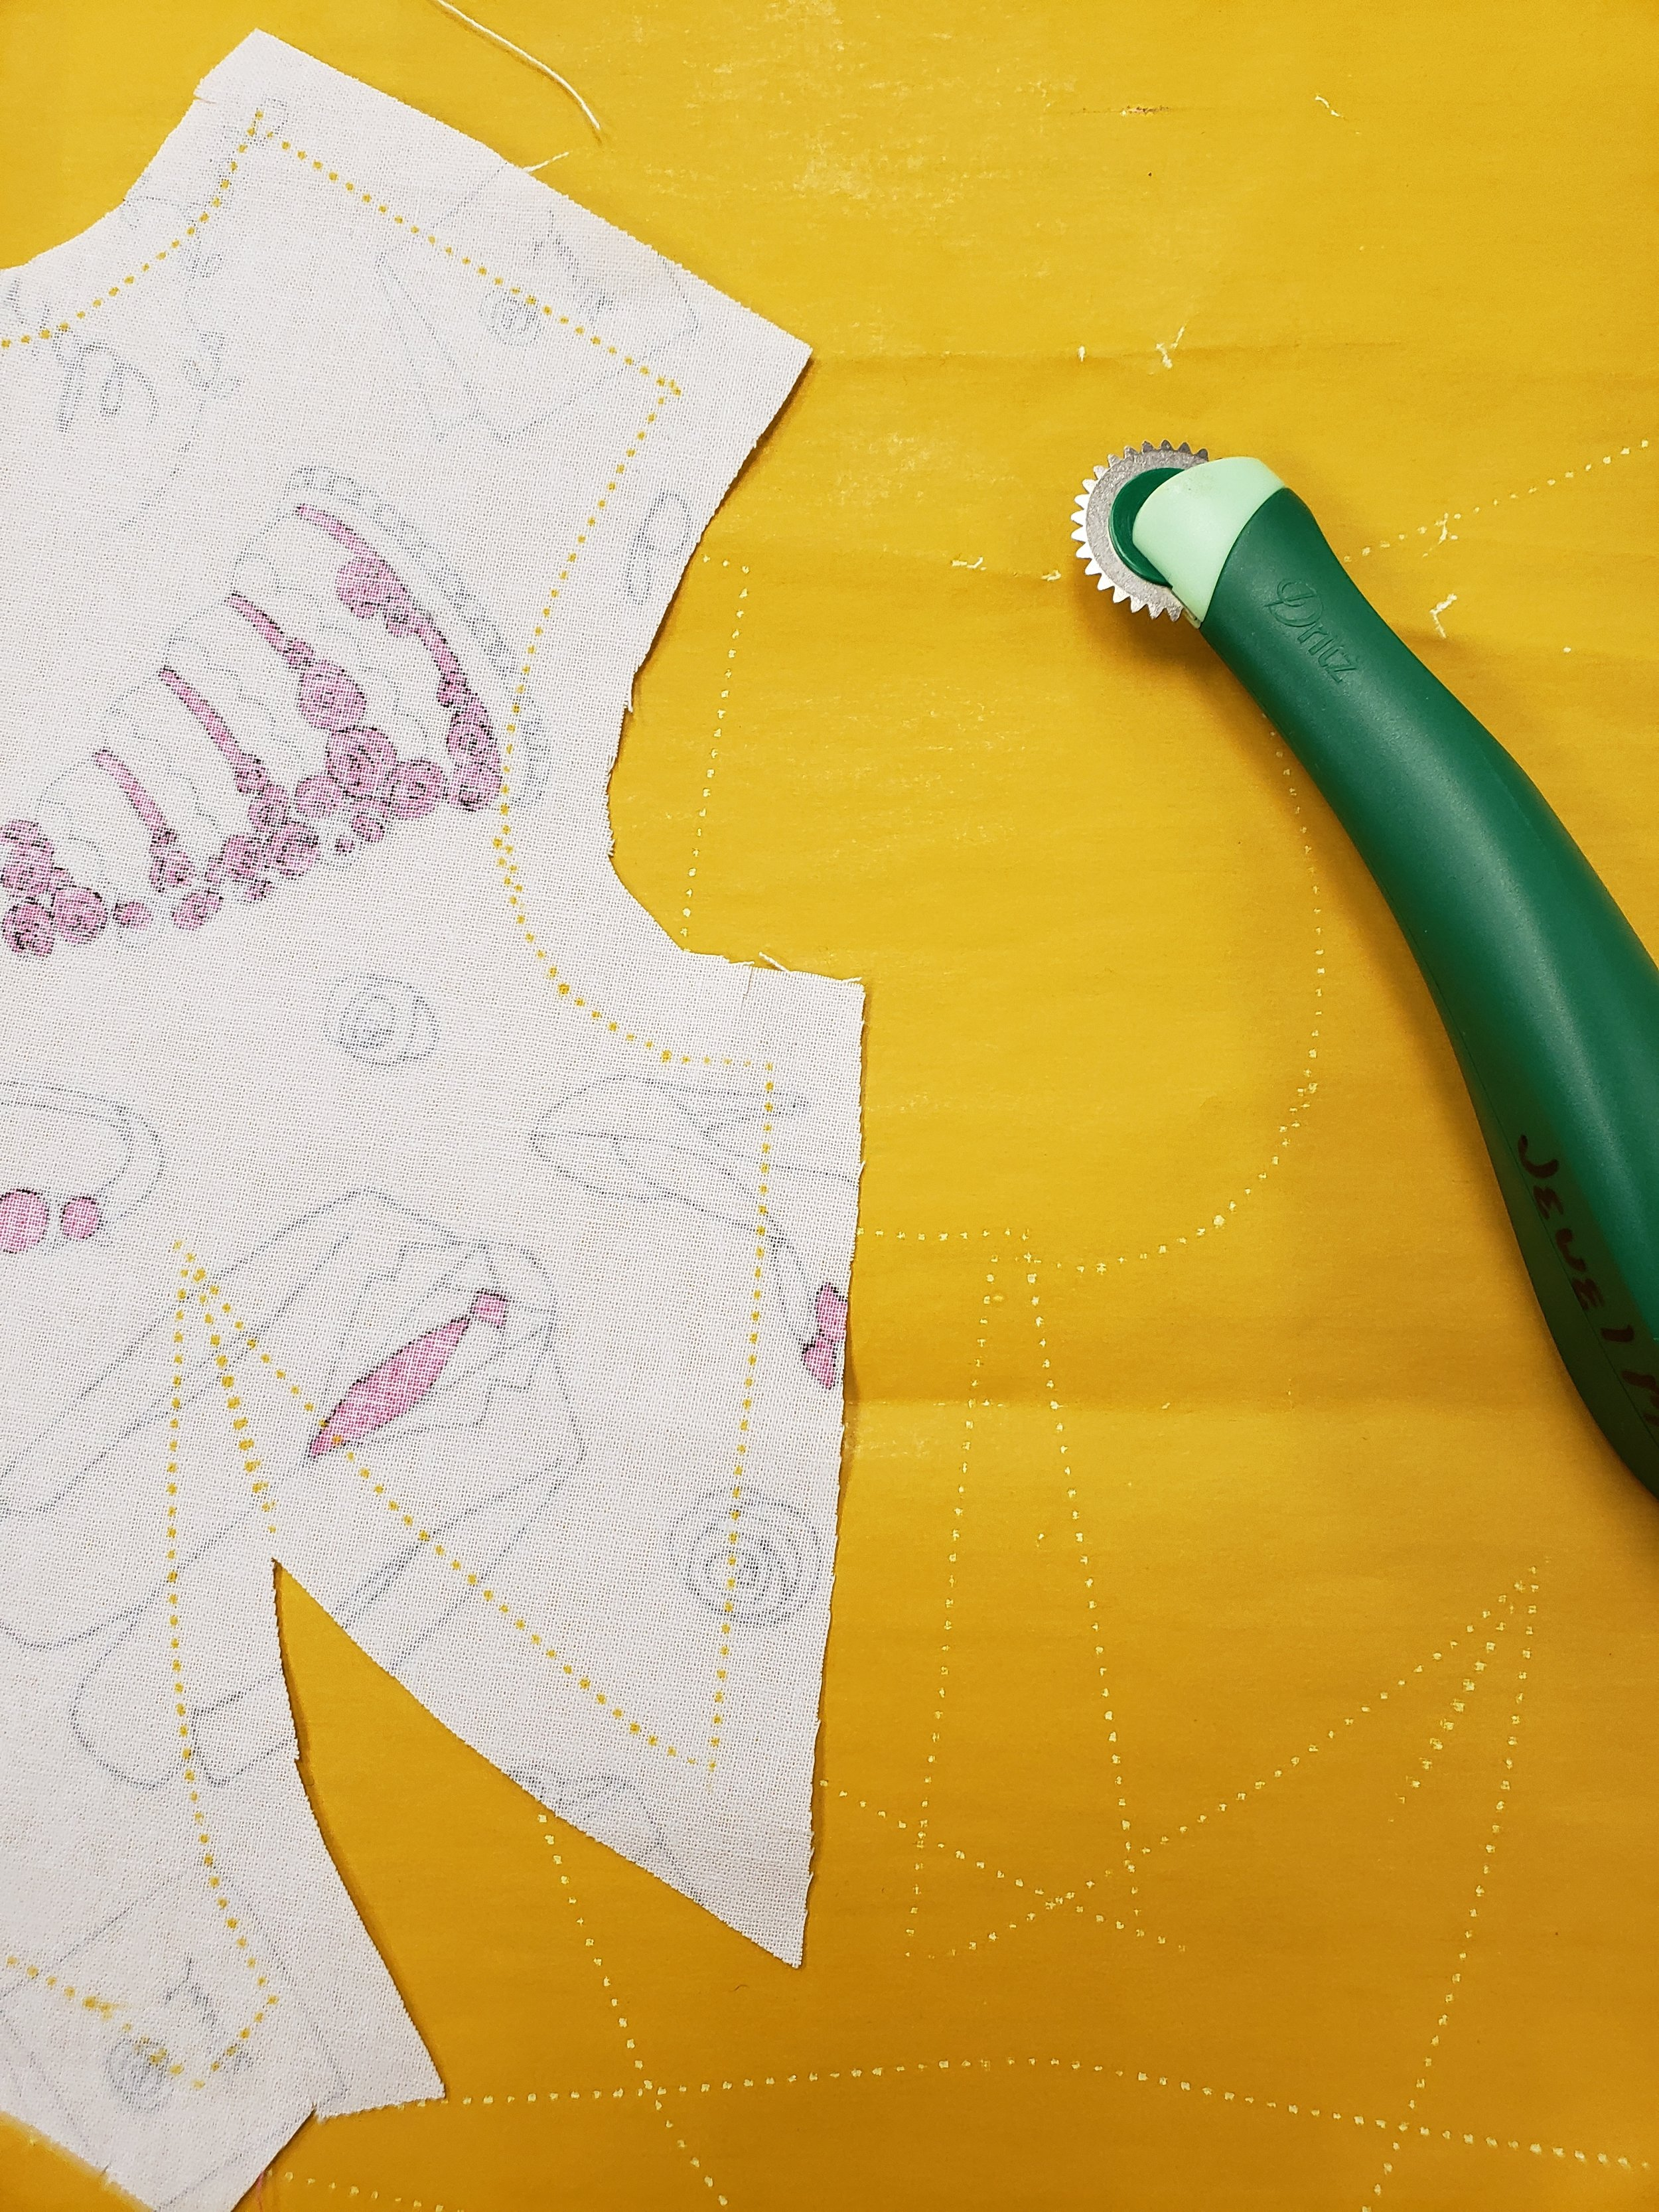 Using a tracing wheel to mark my darts and seam lines for the first time!